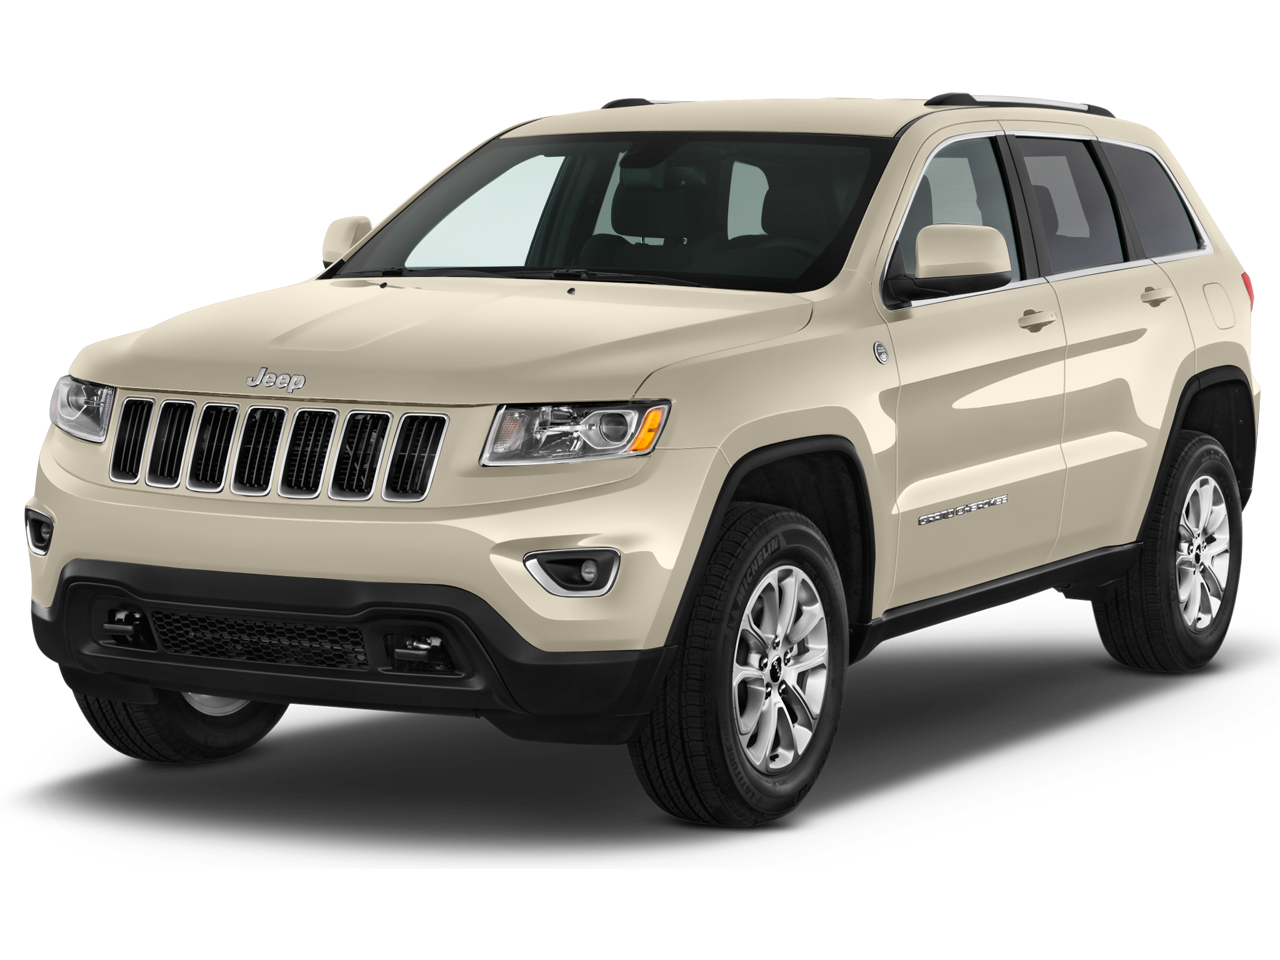 jeep lexington challenger scat pack 2019 2020 new car. Black Bedroom Furniture Sets. Home Design Ideas